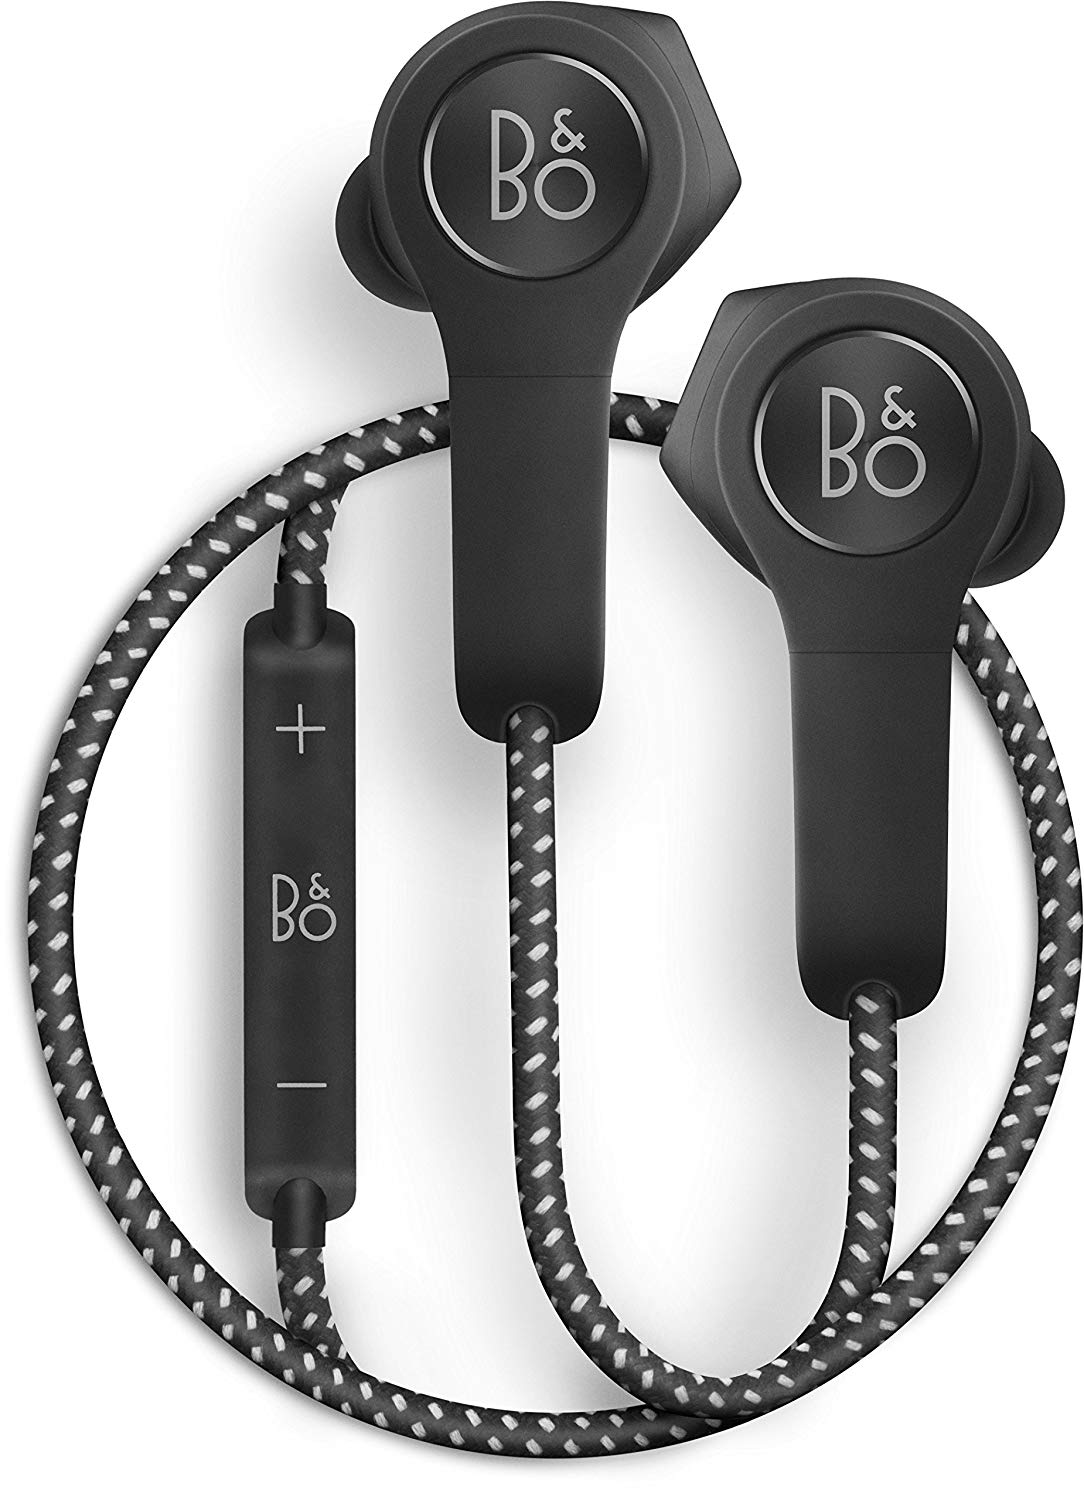 Bang & Olufsen Beoplay H5 Wireless Bluetooth Earbuds - Black - 1643426